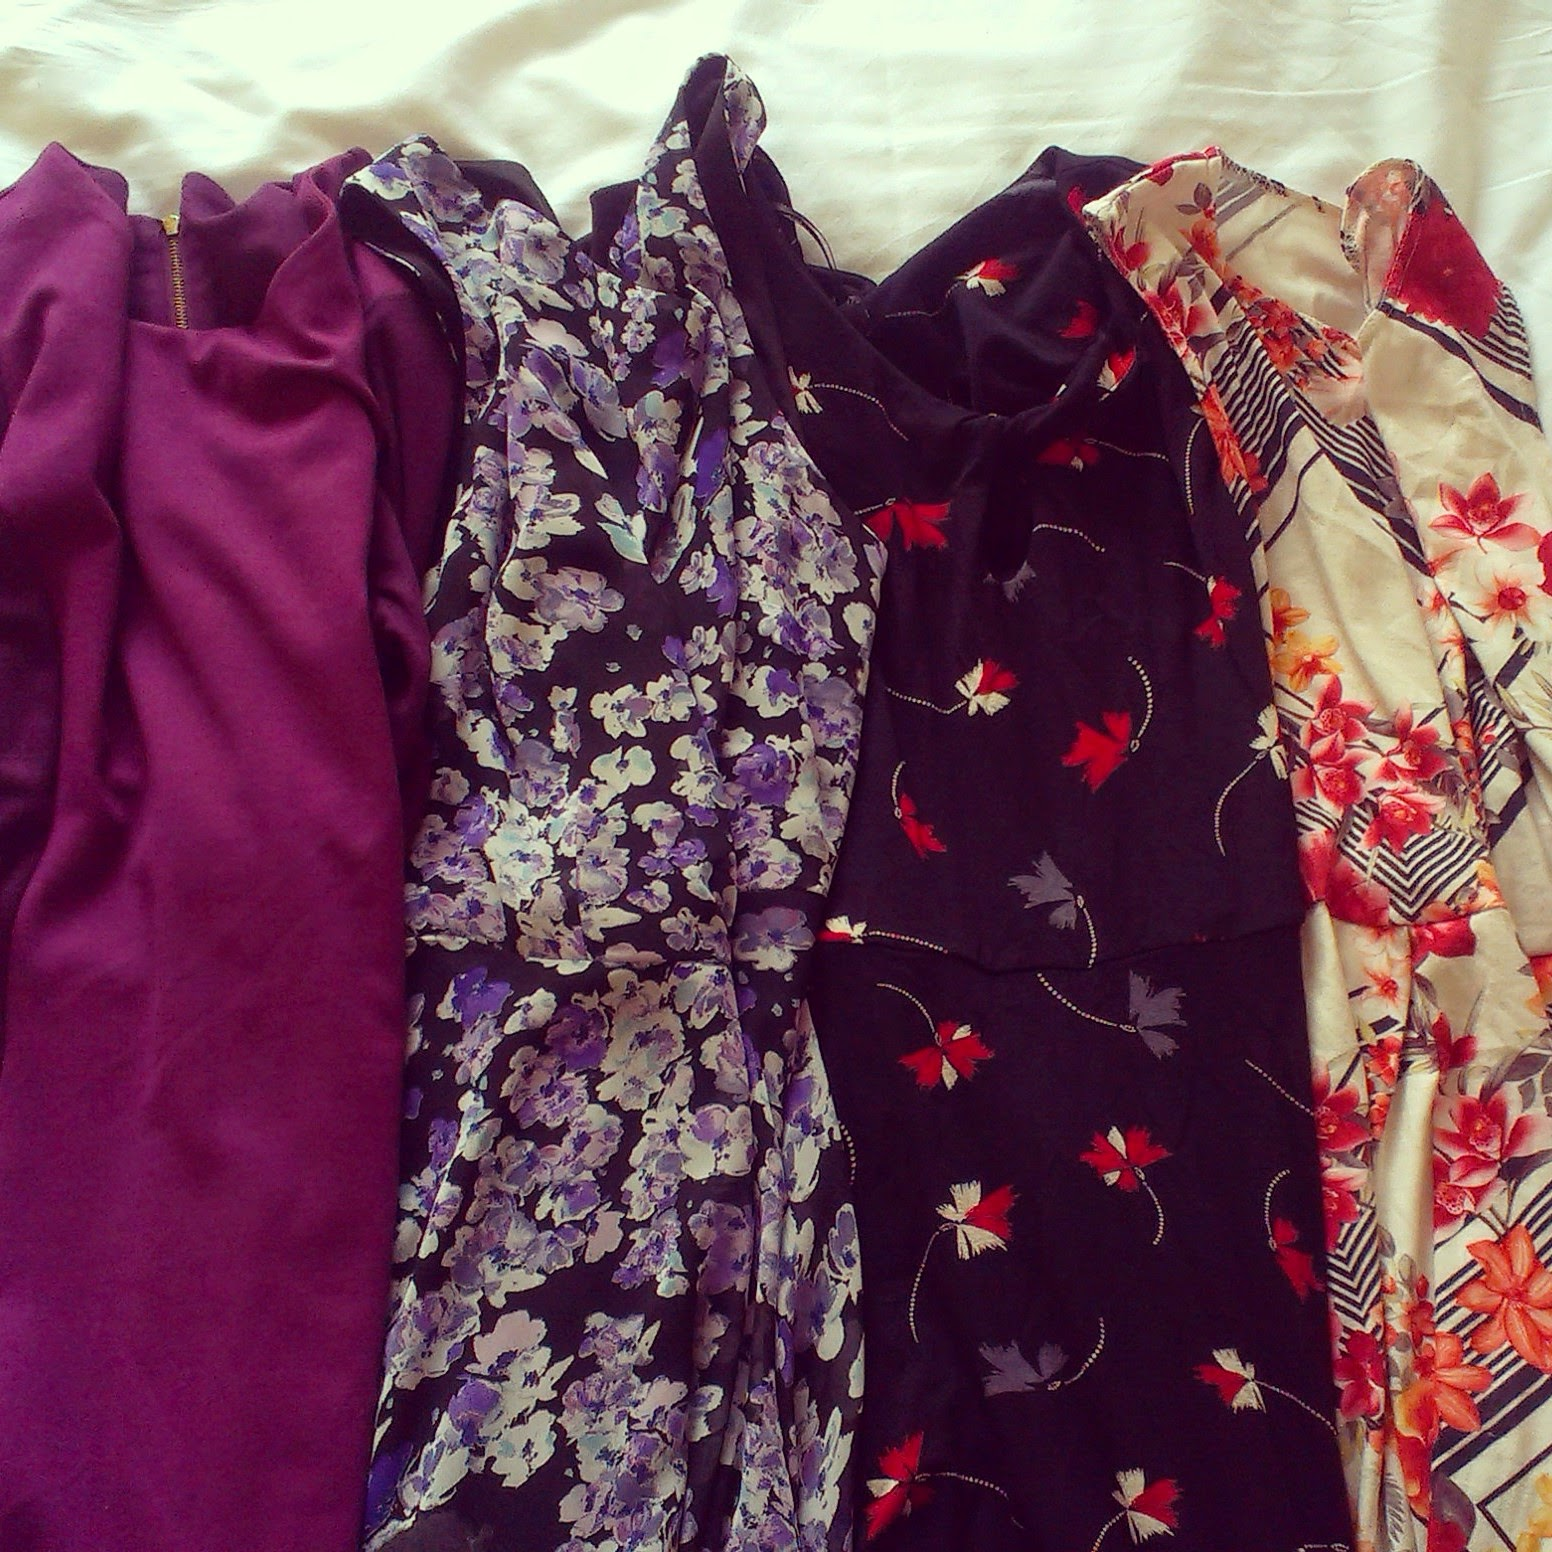 Charity shop dresses